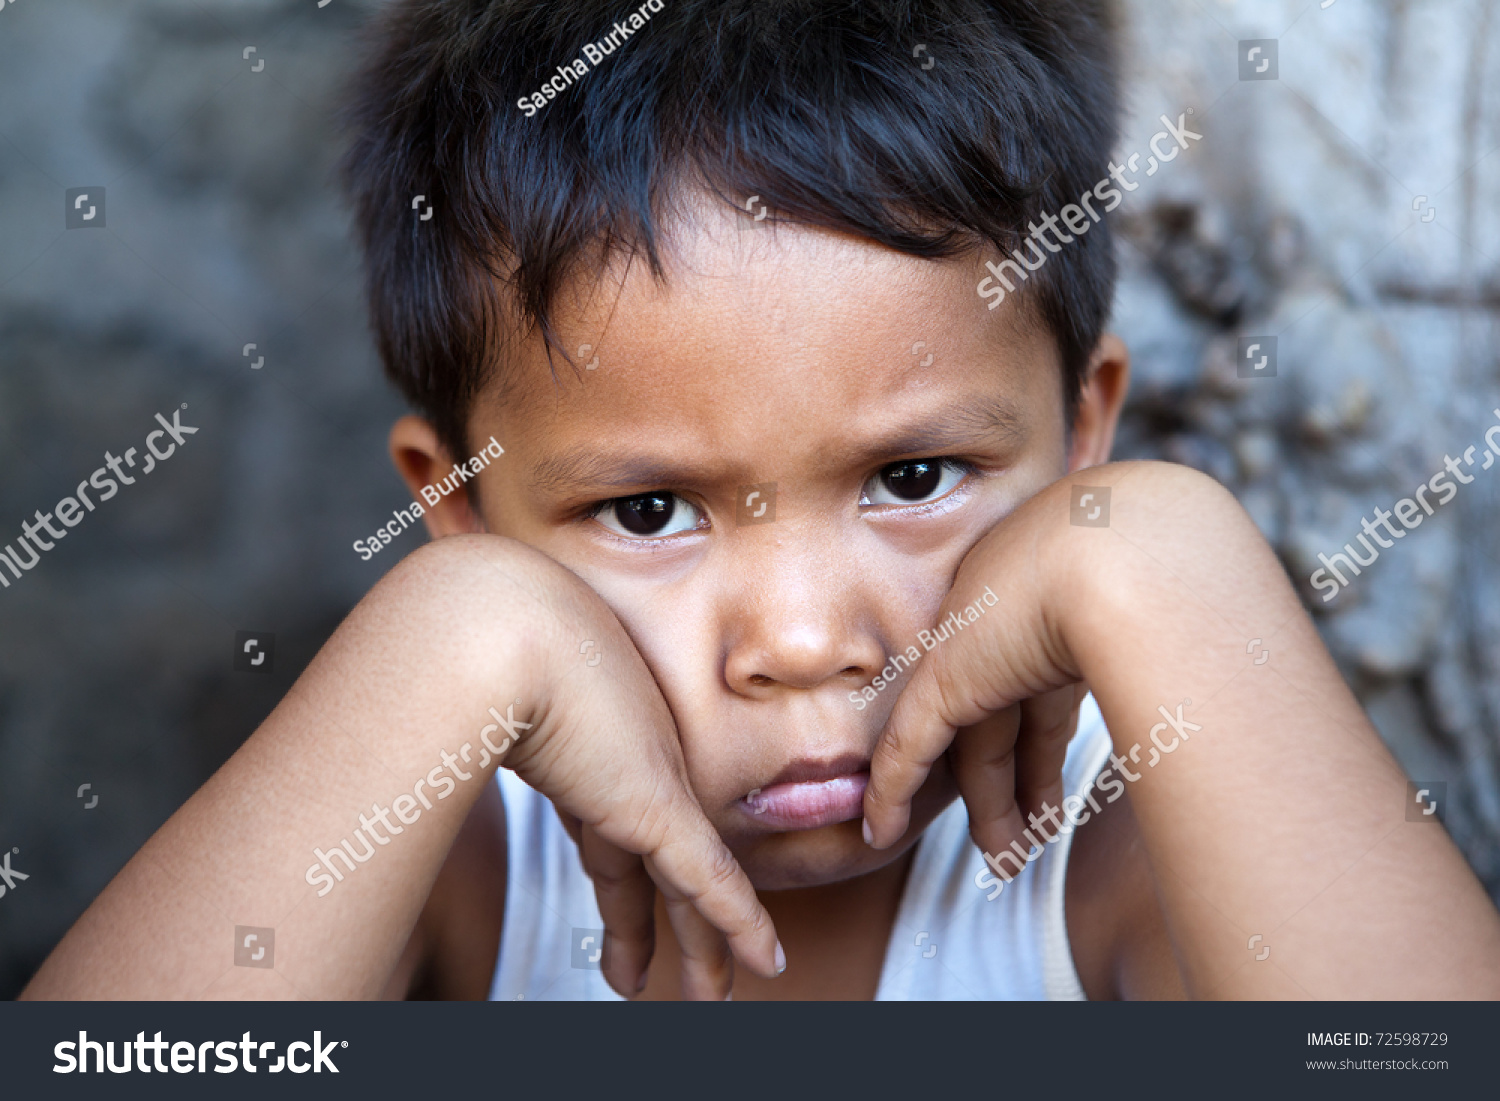 young filipino boy sad expression against stock photo edit now